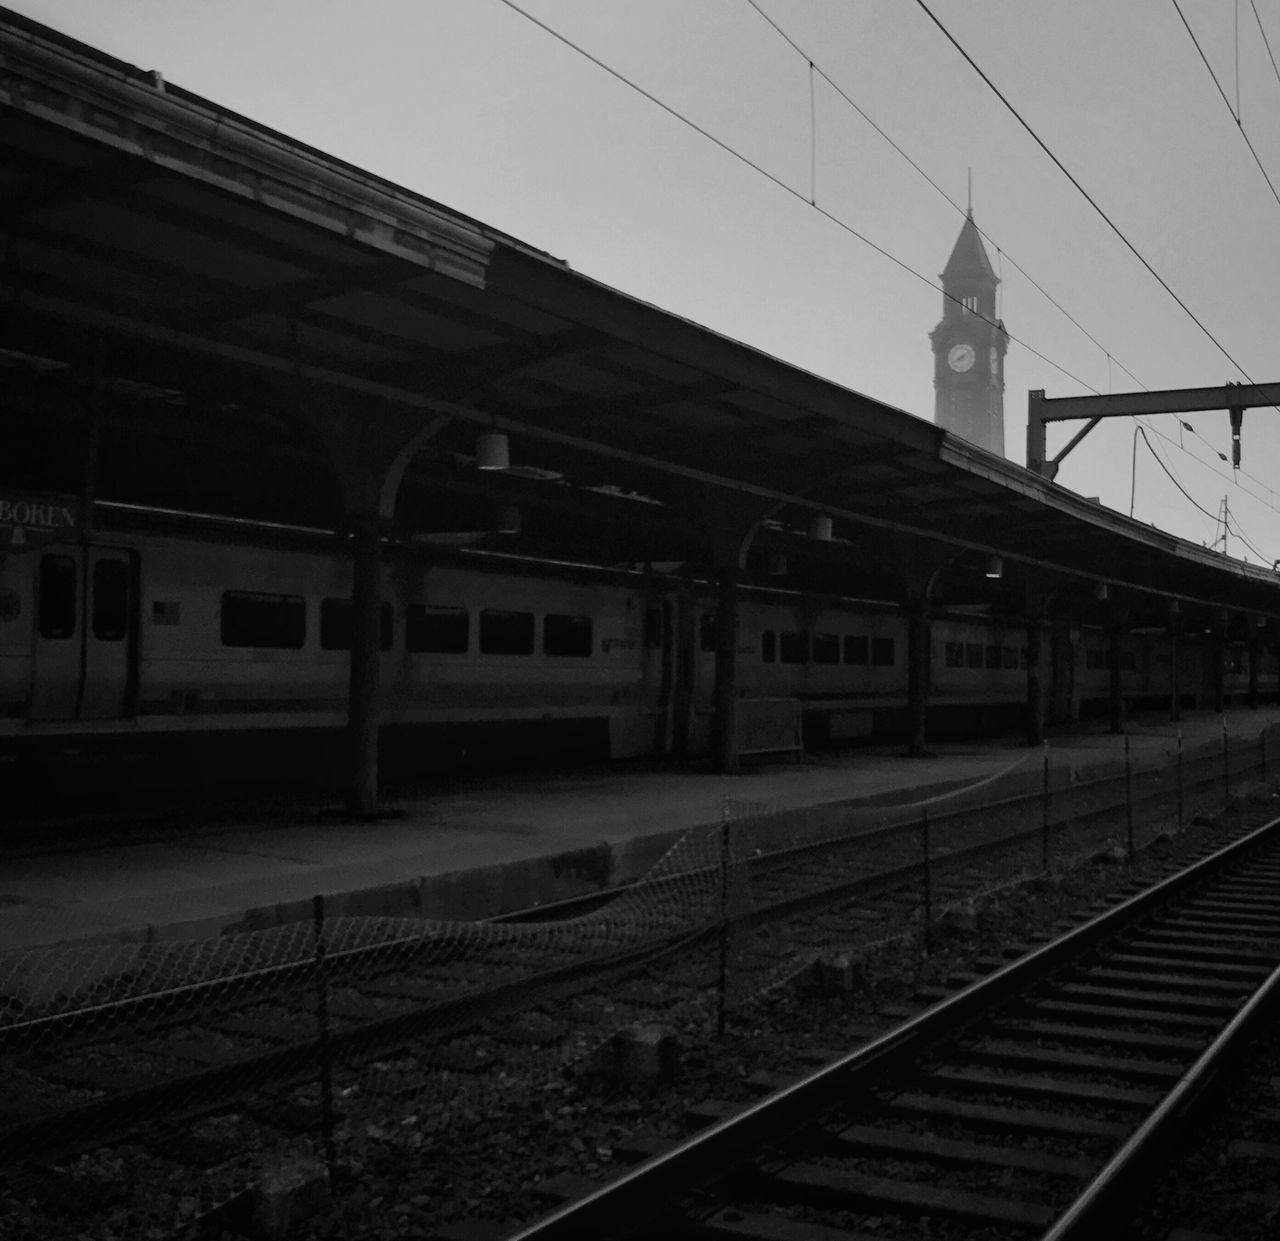 Building Exterior Transportation Built Structure Architecture Railroad Track Rail Transportation Outdoors Railroad Station Sky Day Public Transportation Railroad Station Platform TheMinimals (less Edit Juxt Photography) Blackandwhite